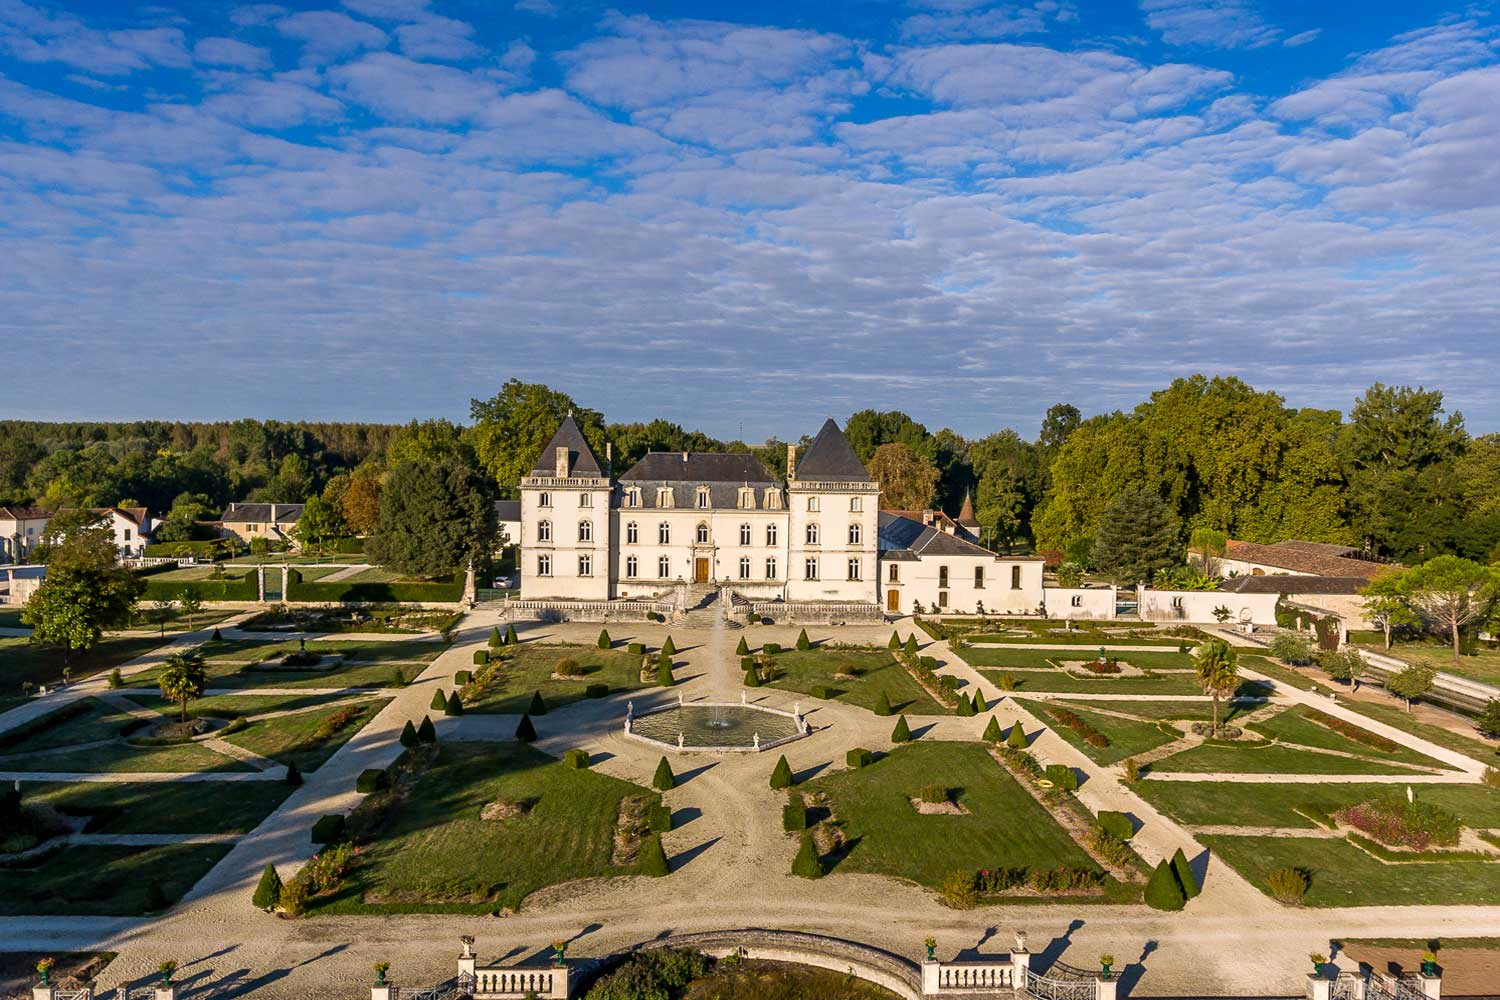 <b>Cognac, France</b><br/><i>10 Bedrooms, 19,375 sq. ft.</i><br/>Ten-bedroom Renaissance estate